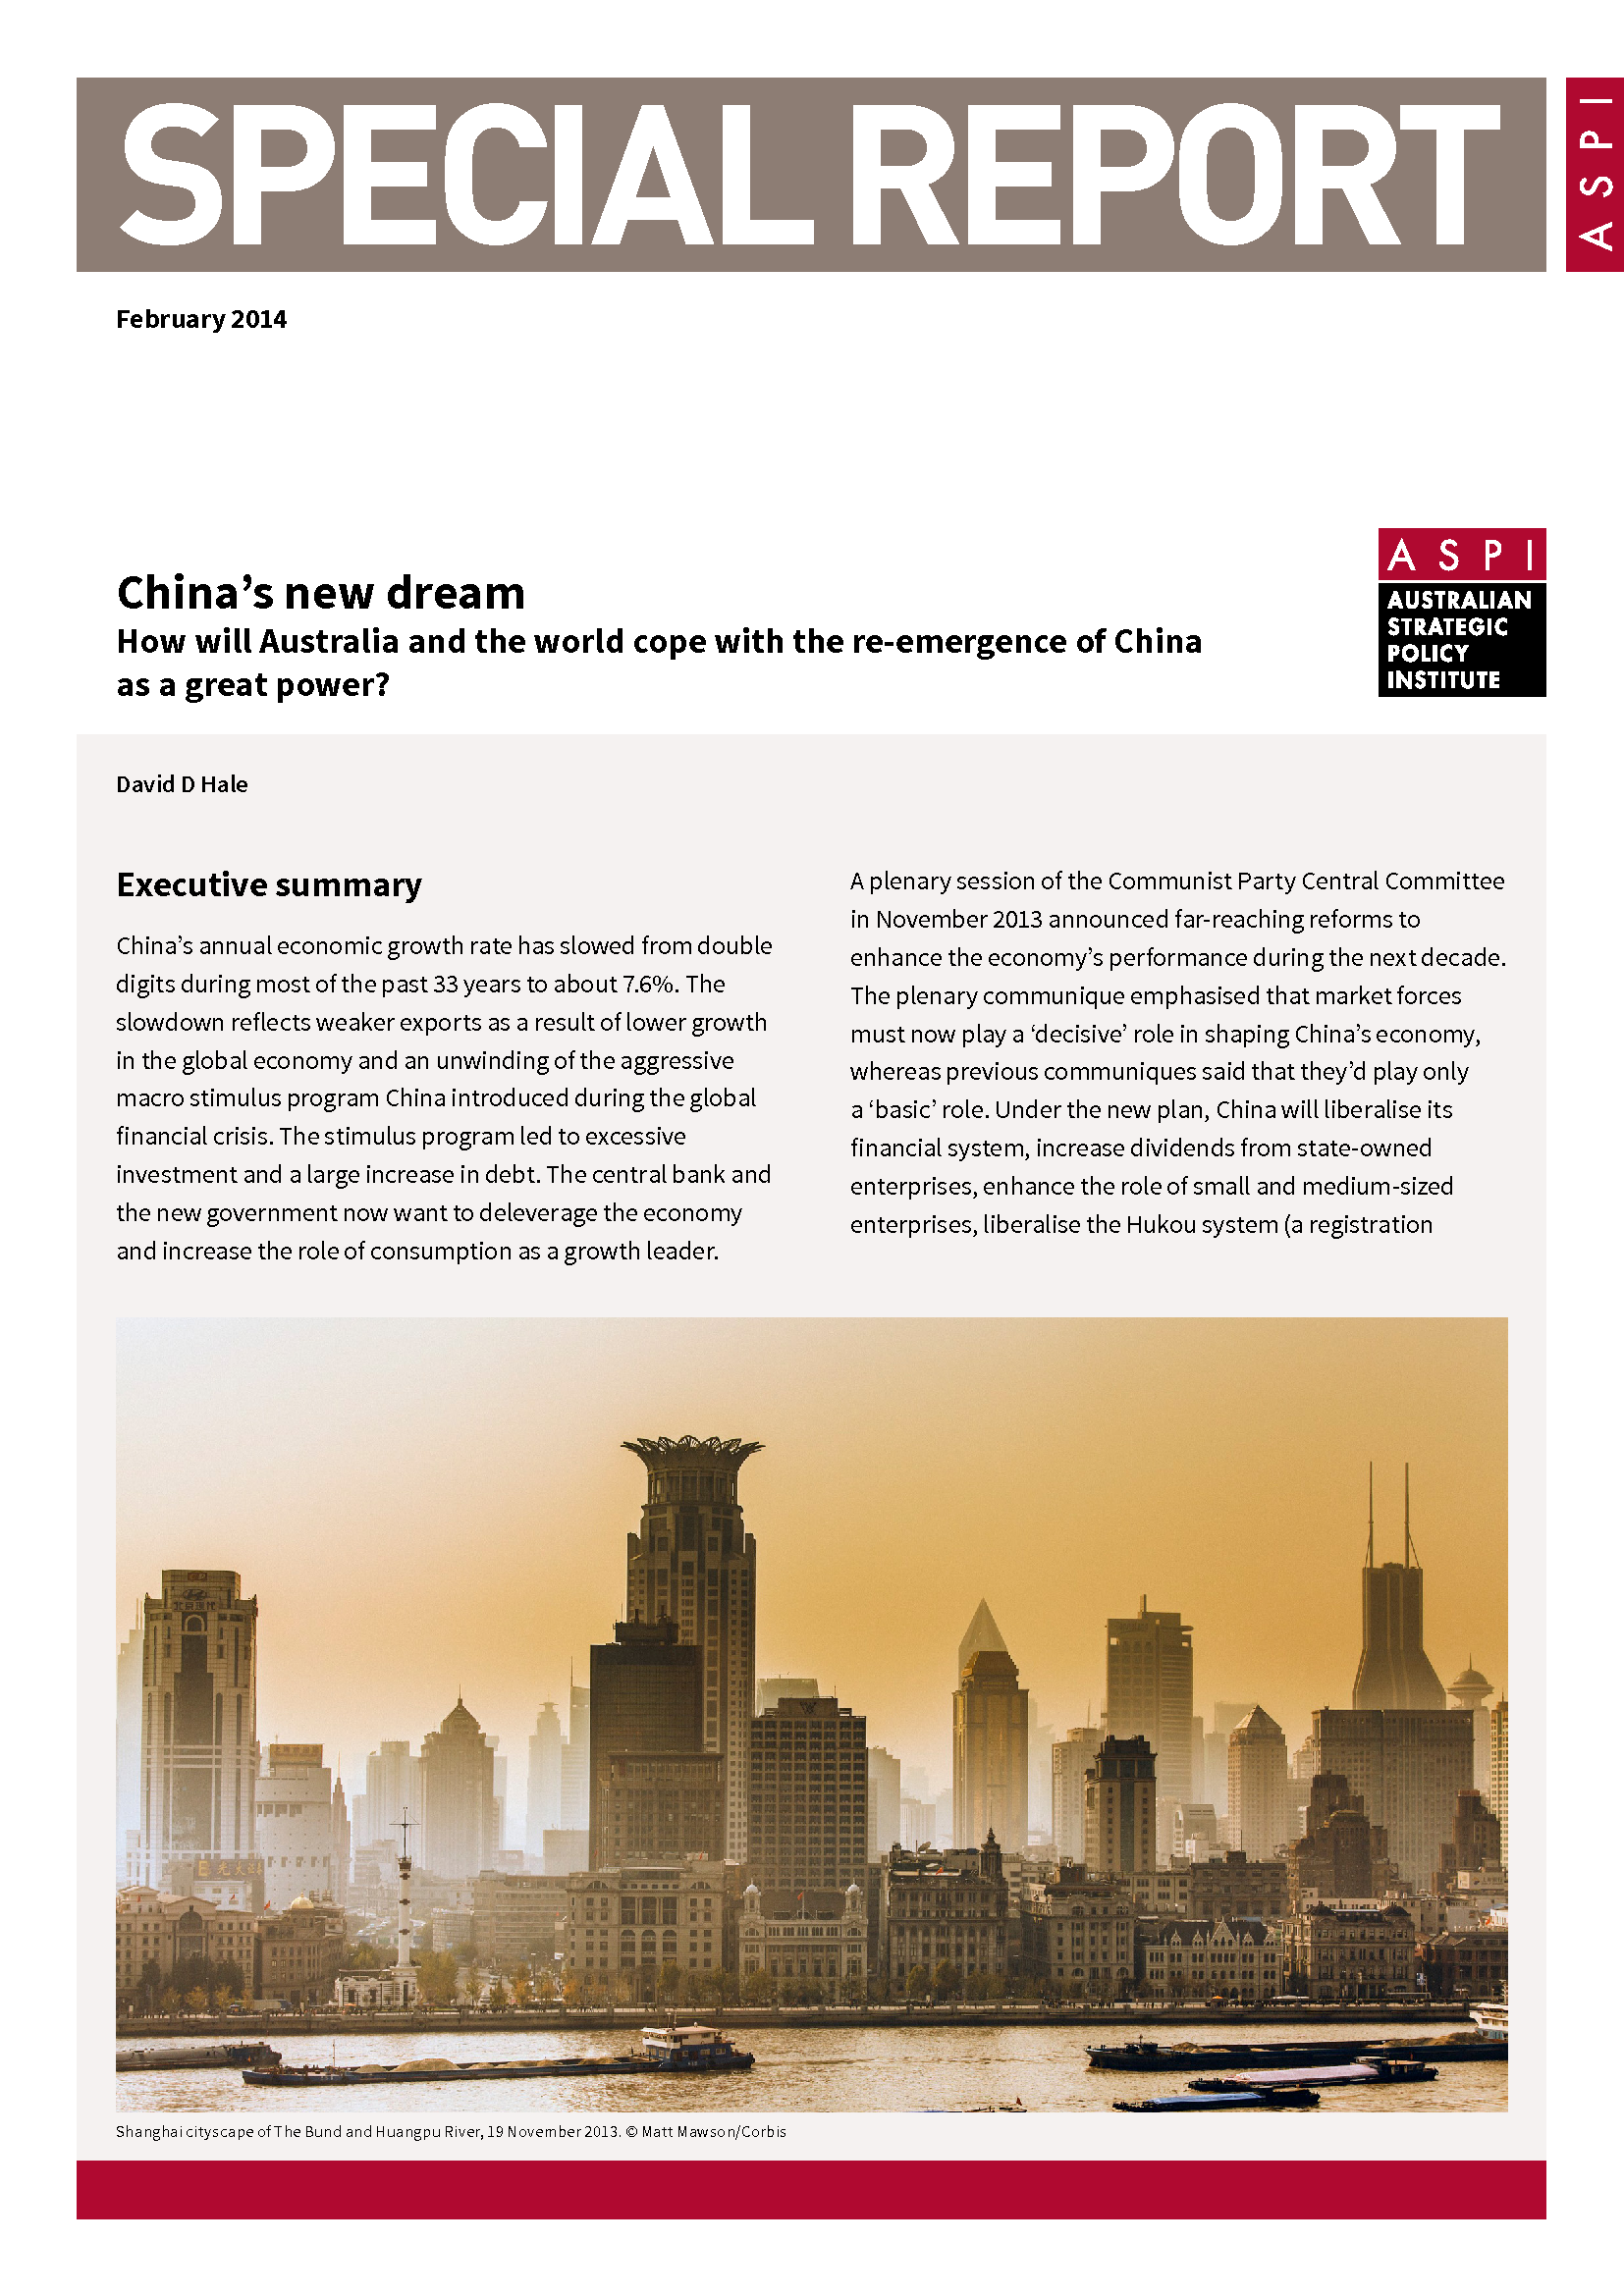 2014_In-Depth Report_Chinas New Dream-DHGE-ASPI - Thumb 1